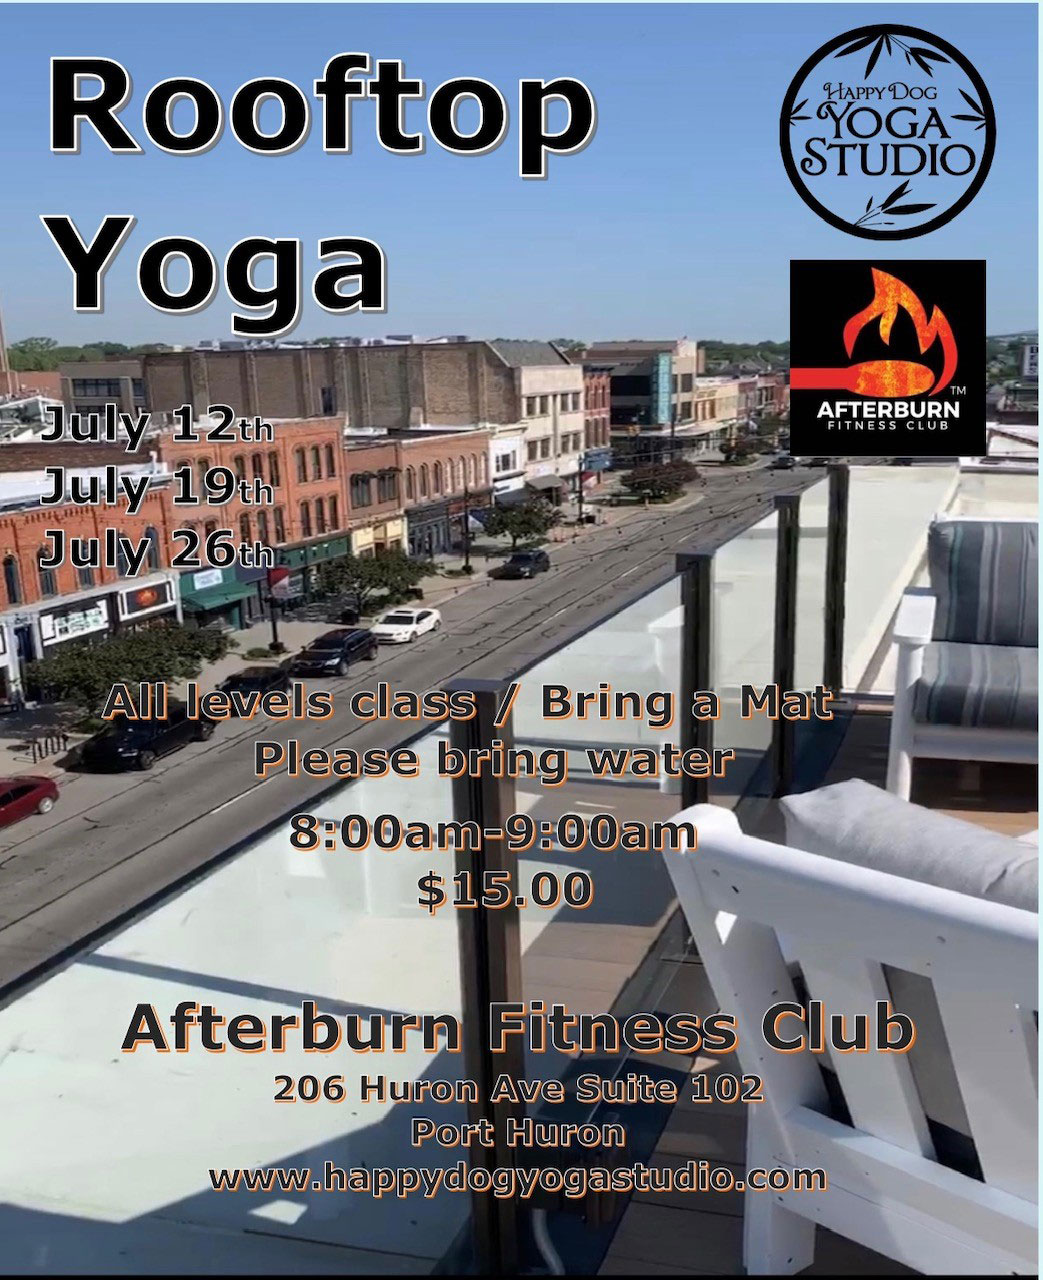 Rooftop Yoga in Port Huron